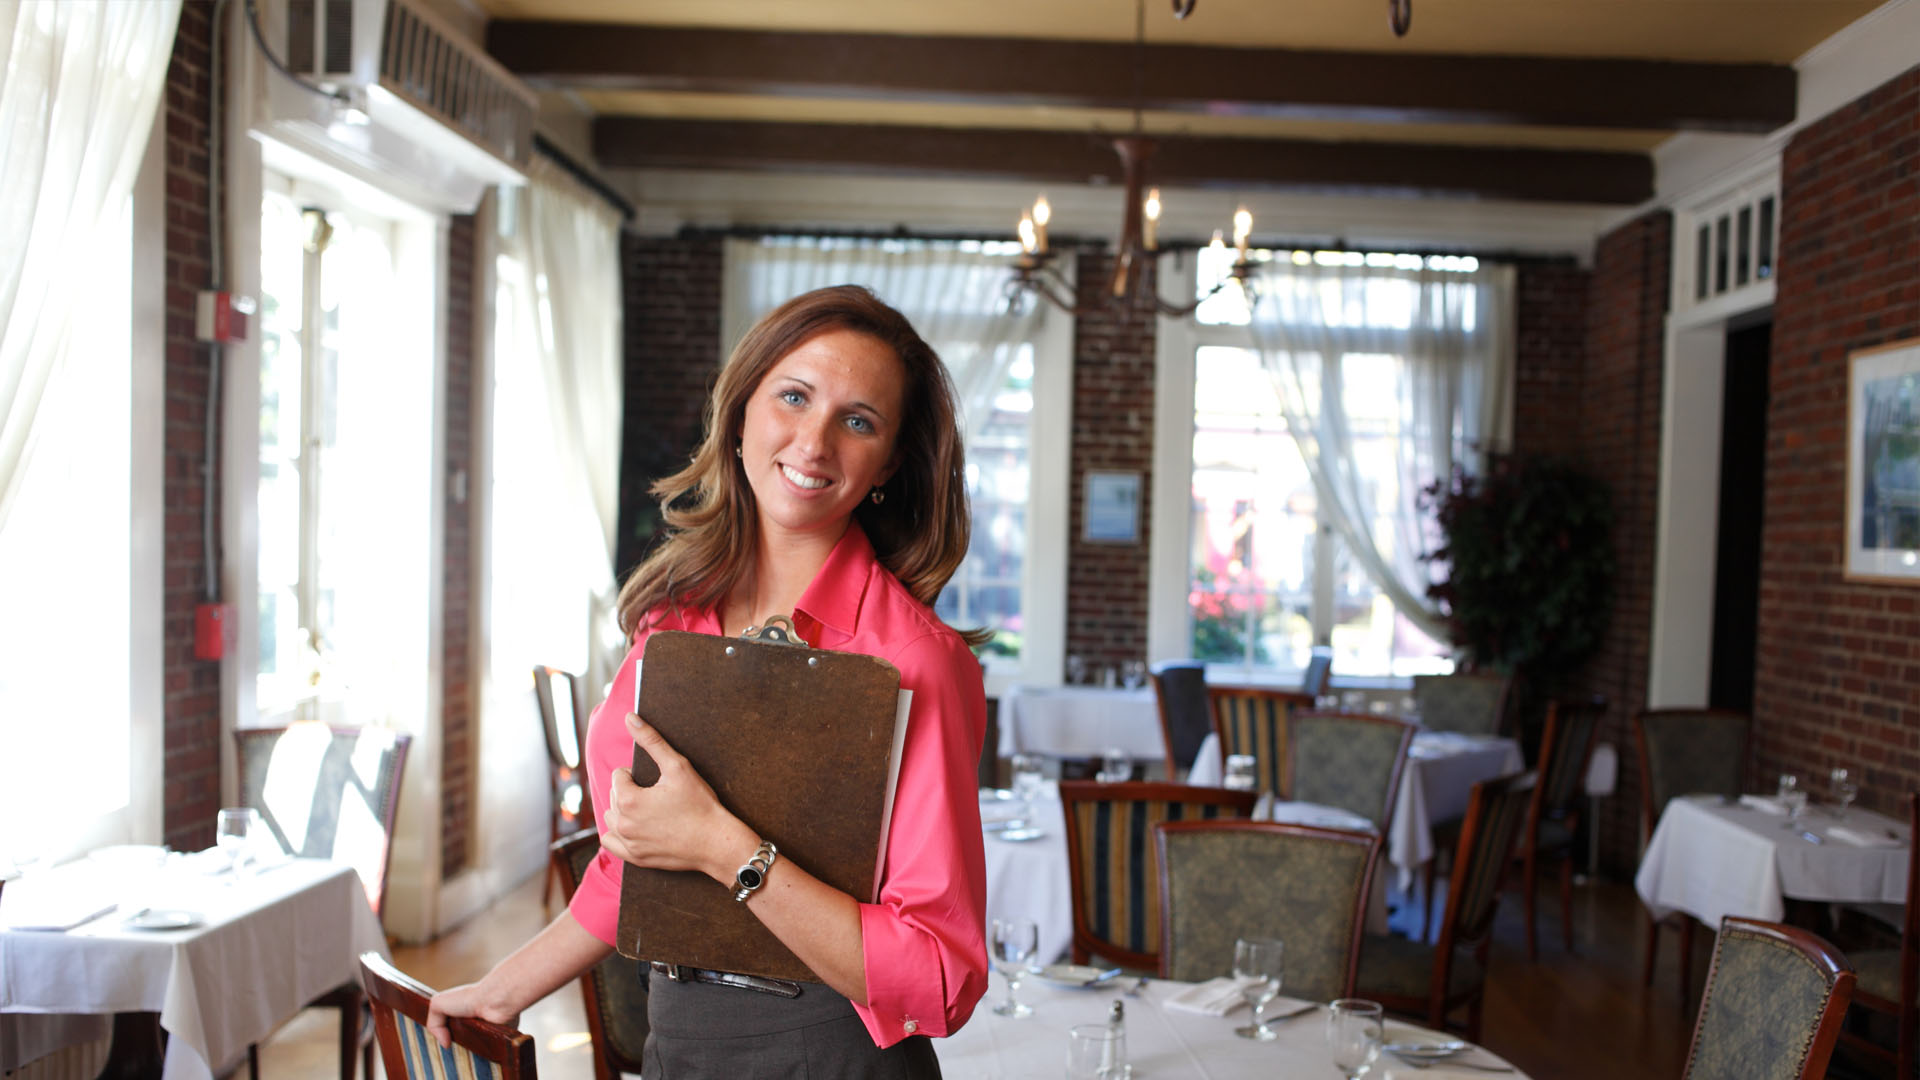 Learn more about the hidden hospitality career.